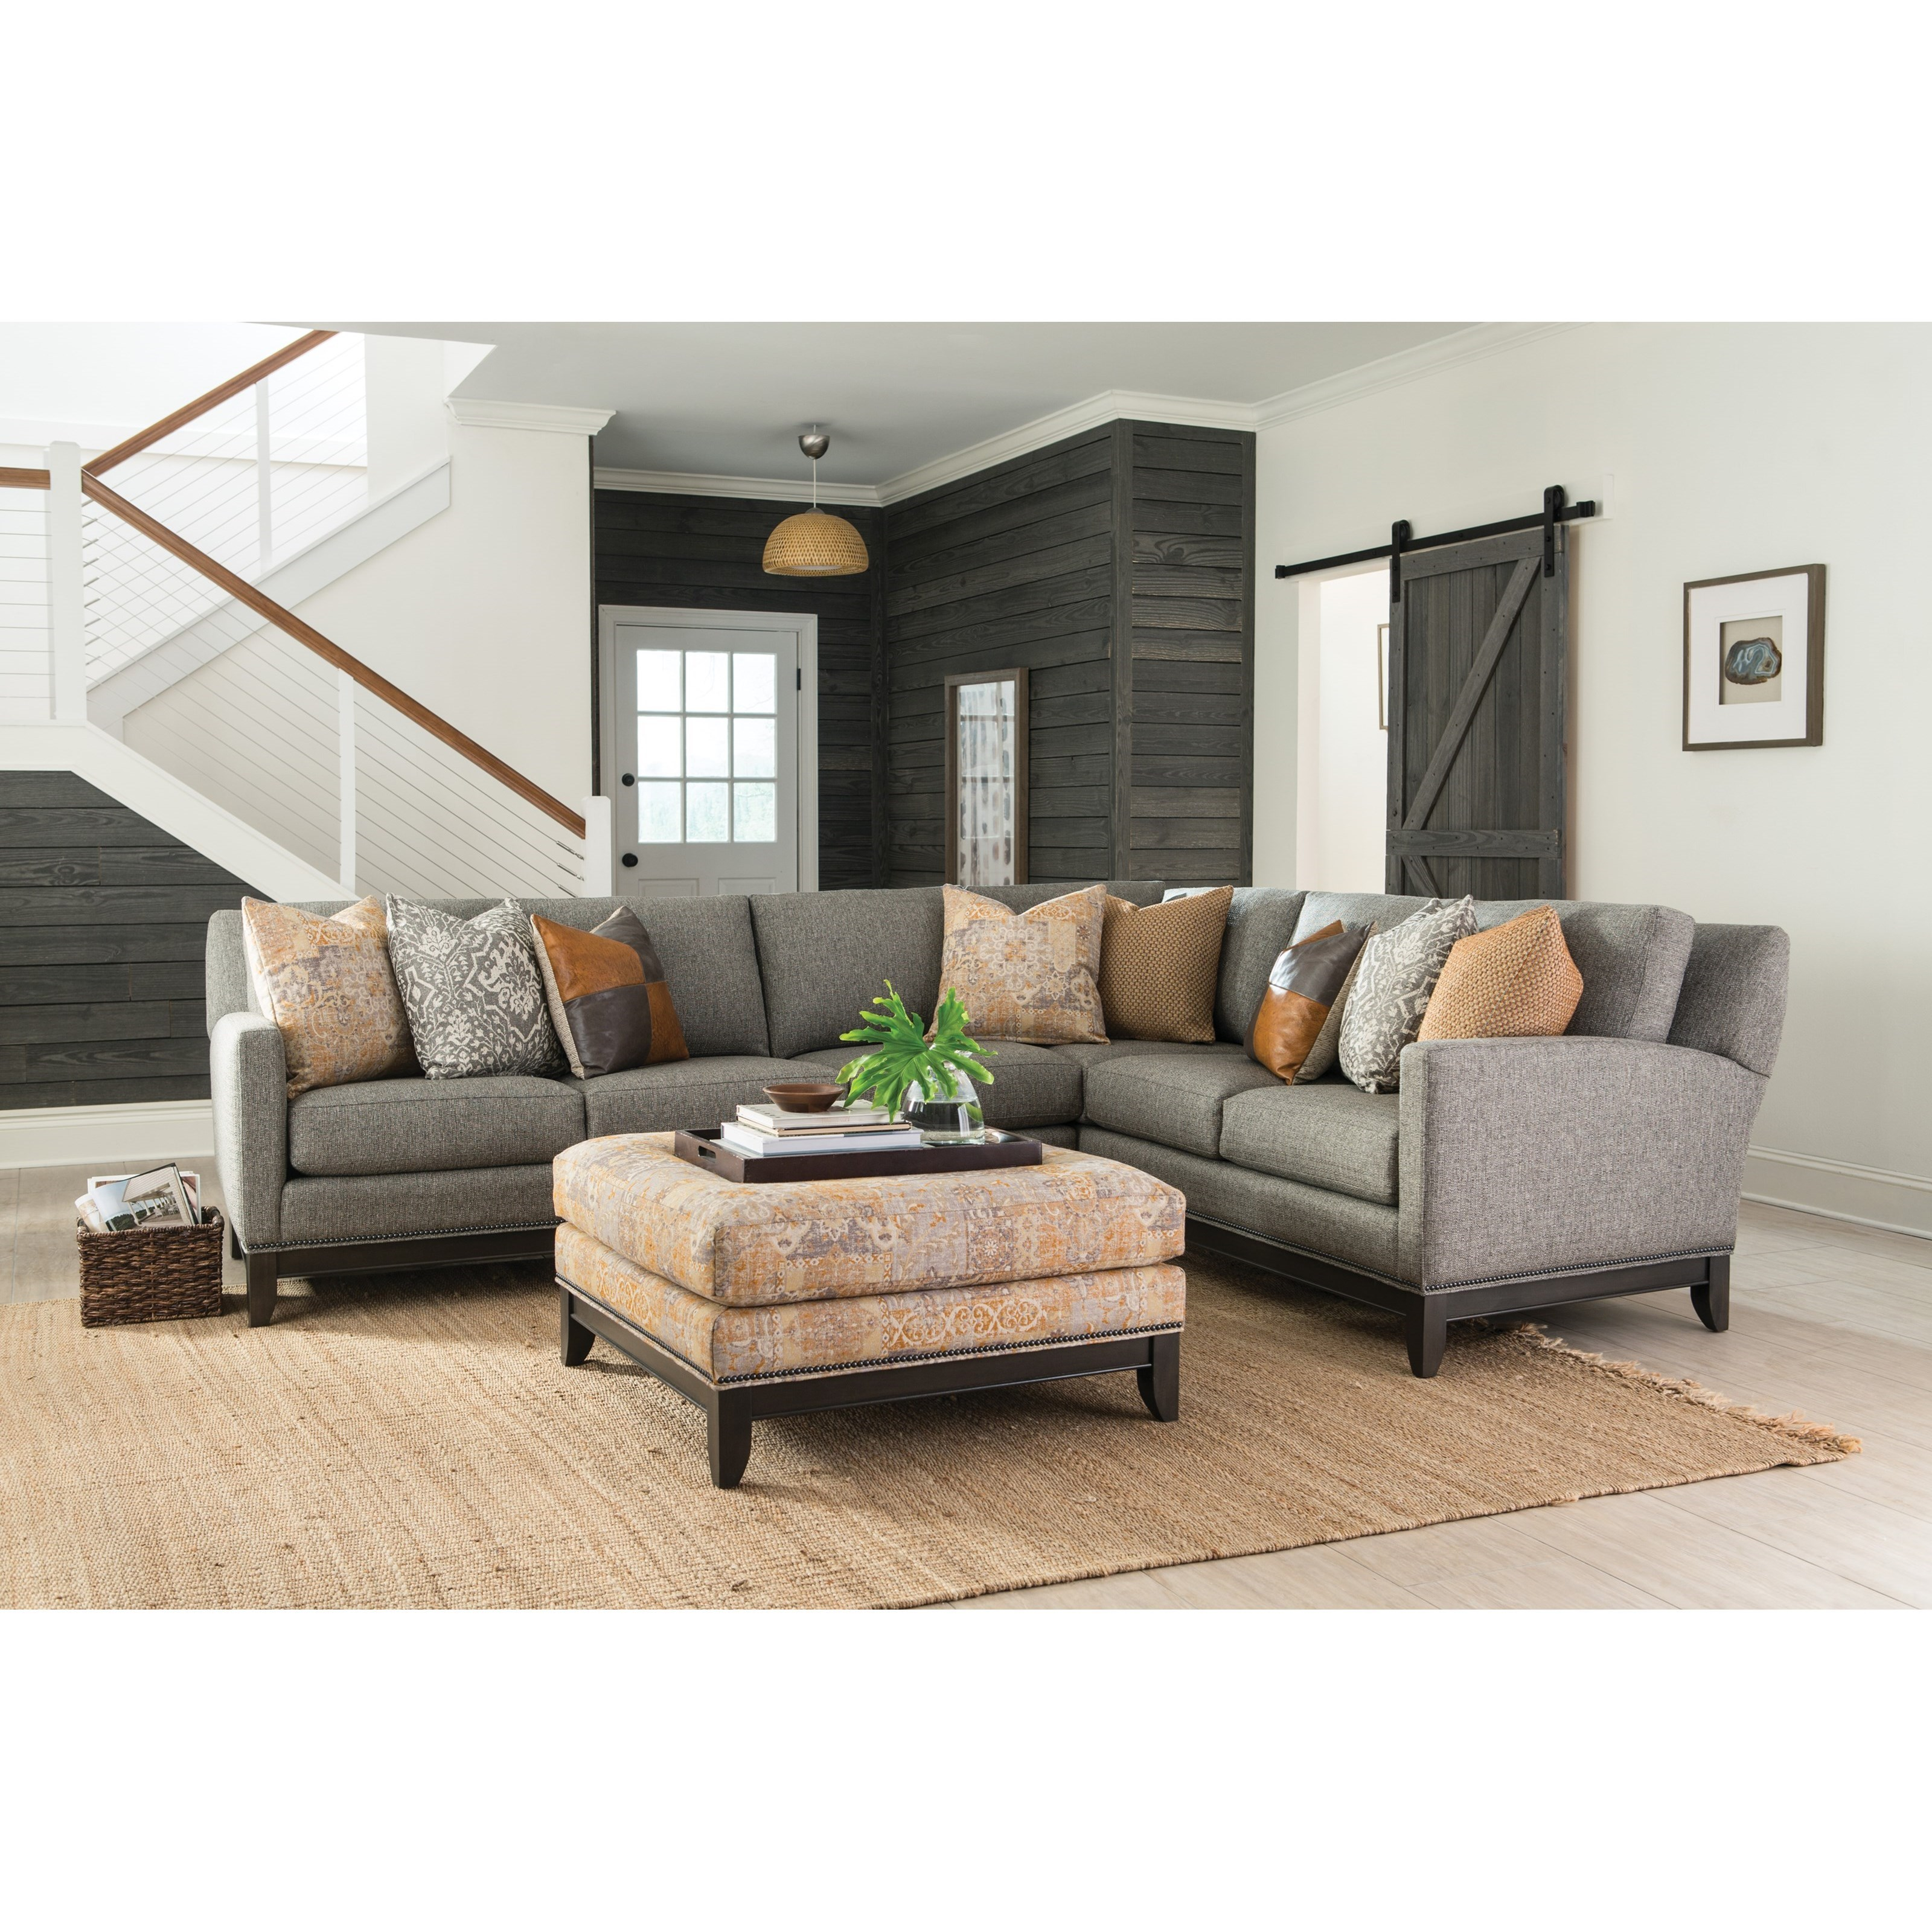 Etonnant 238 Transitional Sectional Sofa With Tapered Legs By Smith Brothers